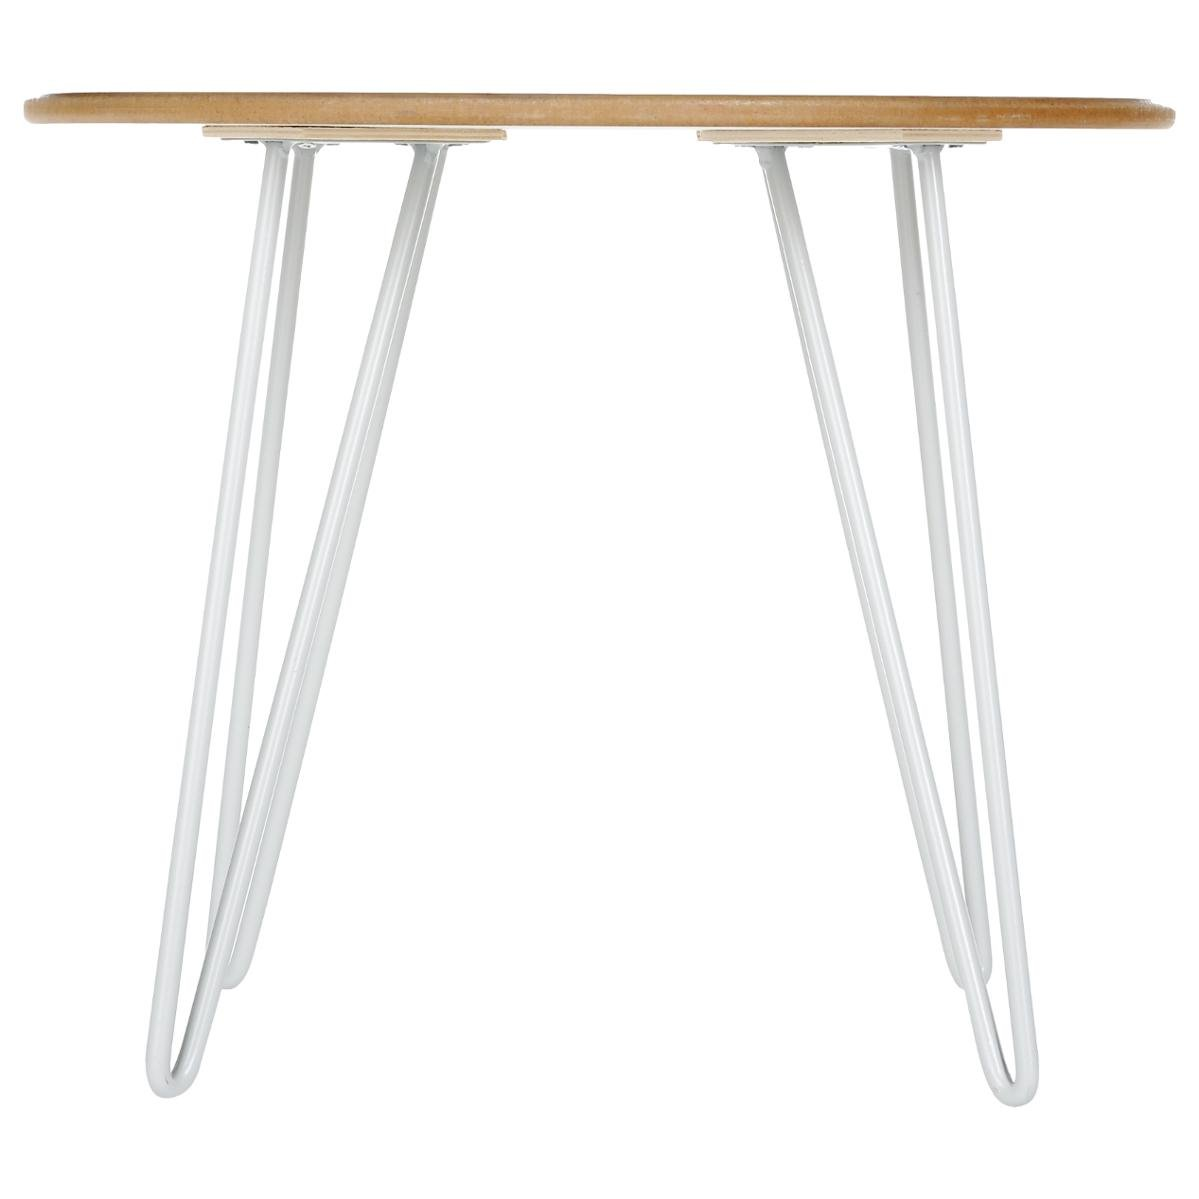 Esprit Coloris Blanc Scandinave Atmosphera Table Design Basse Rj3q54AL